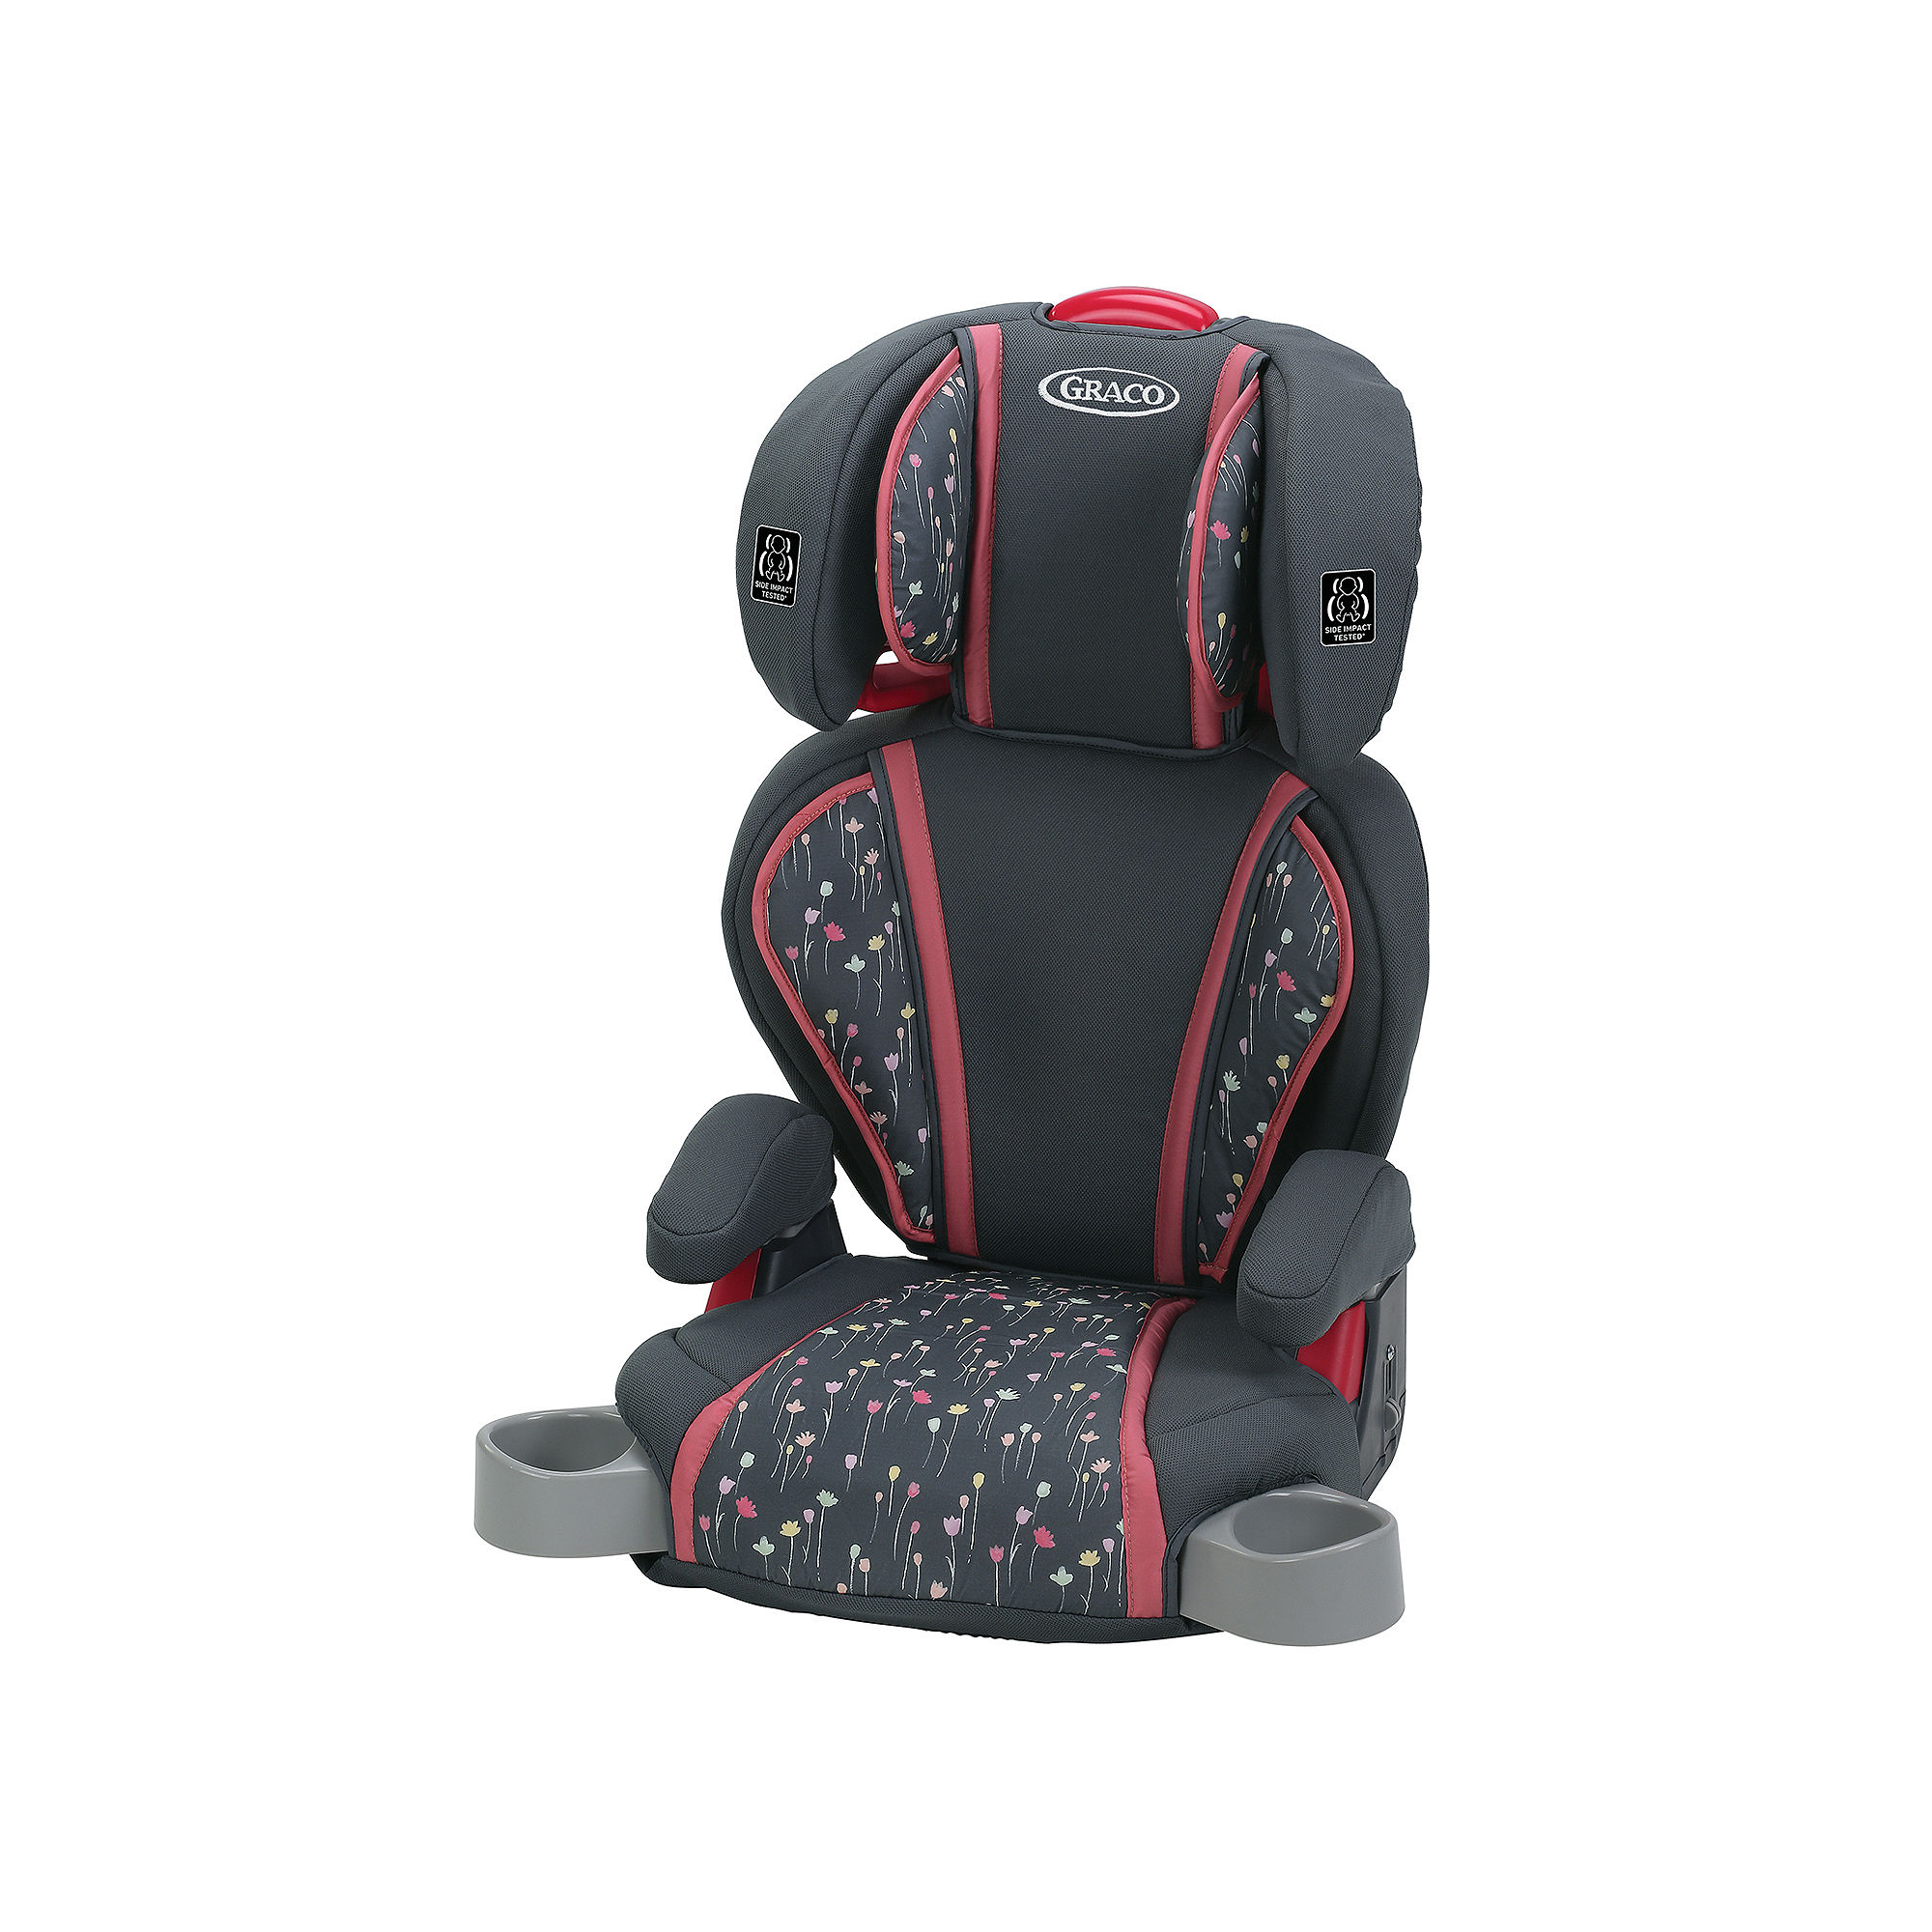 cheap graco highback turbobooster car seat offer cheap car seat. Black Bedroom Furniture Sets. Home Design Ideas